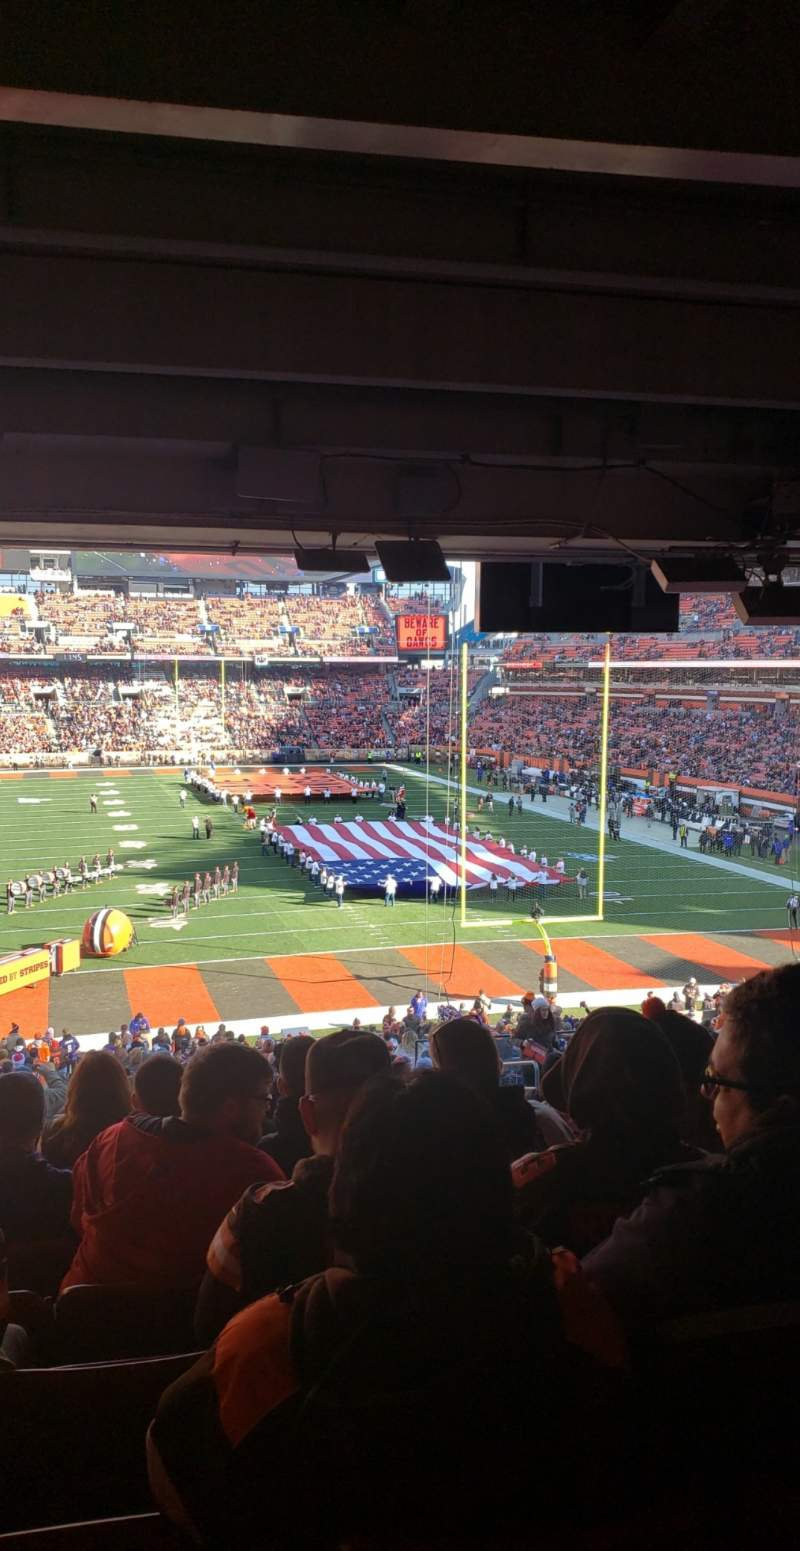 Seating view for FirstEnergy Stadium Section 146 Row 40 Seat 13